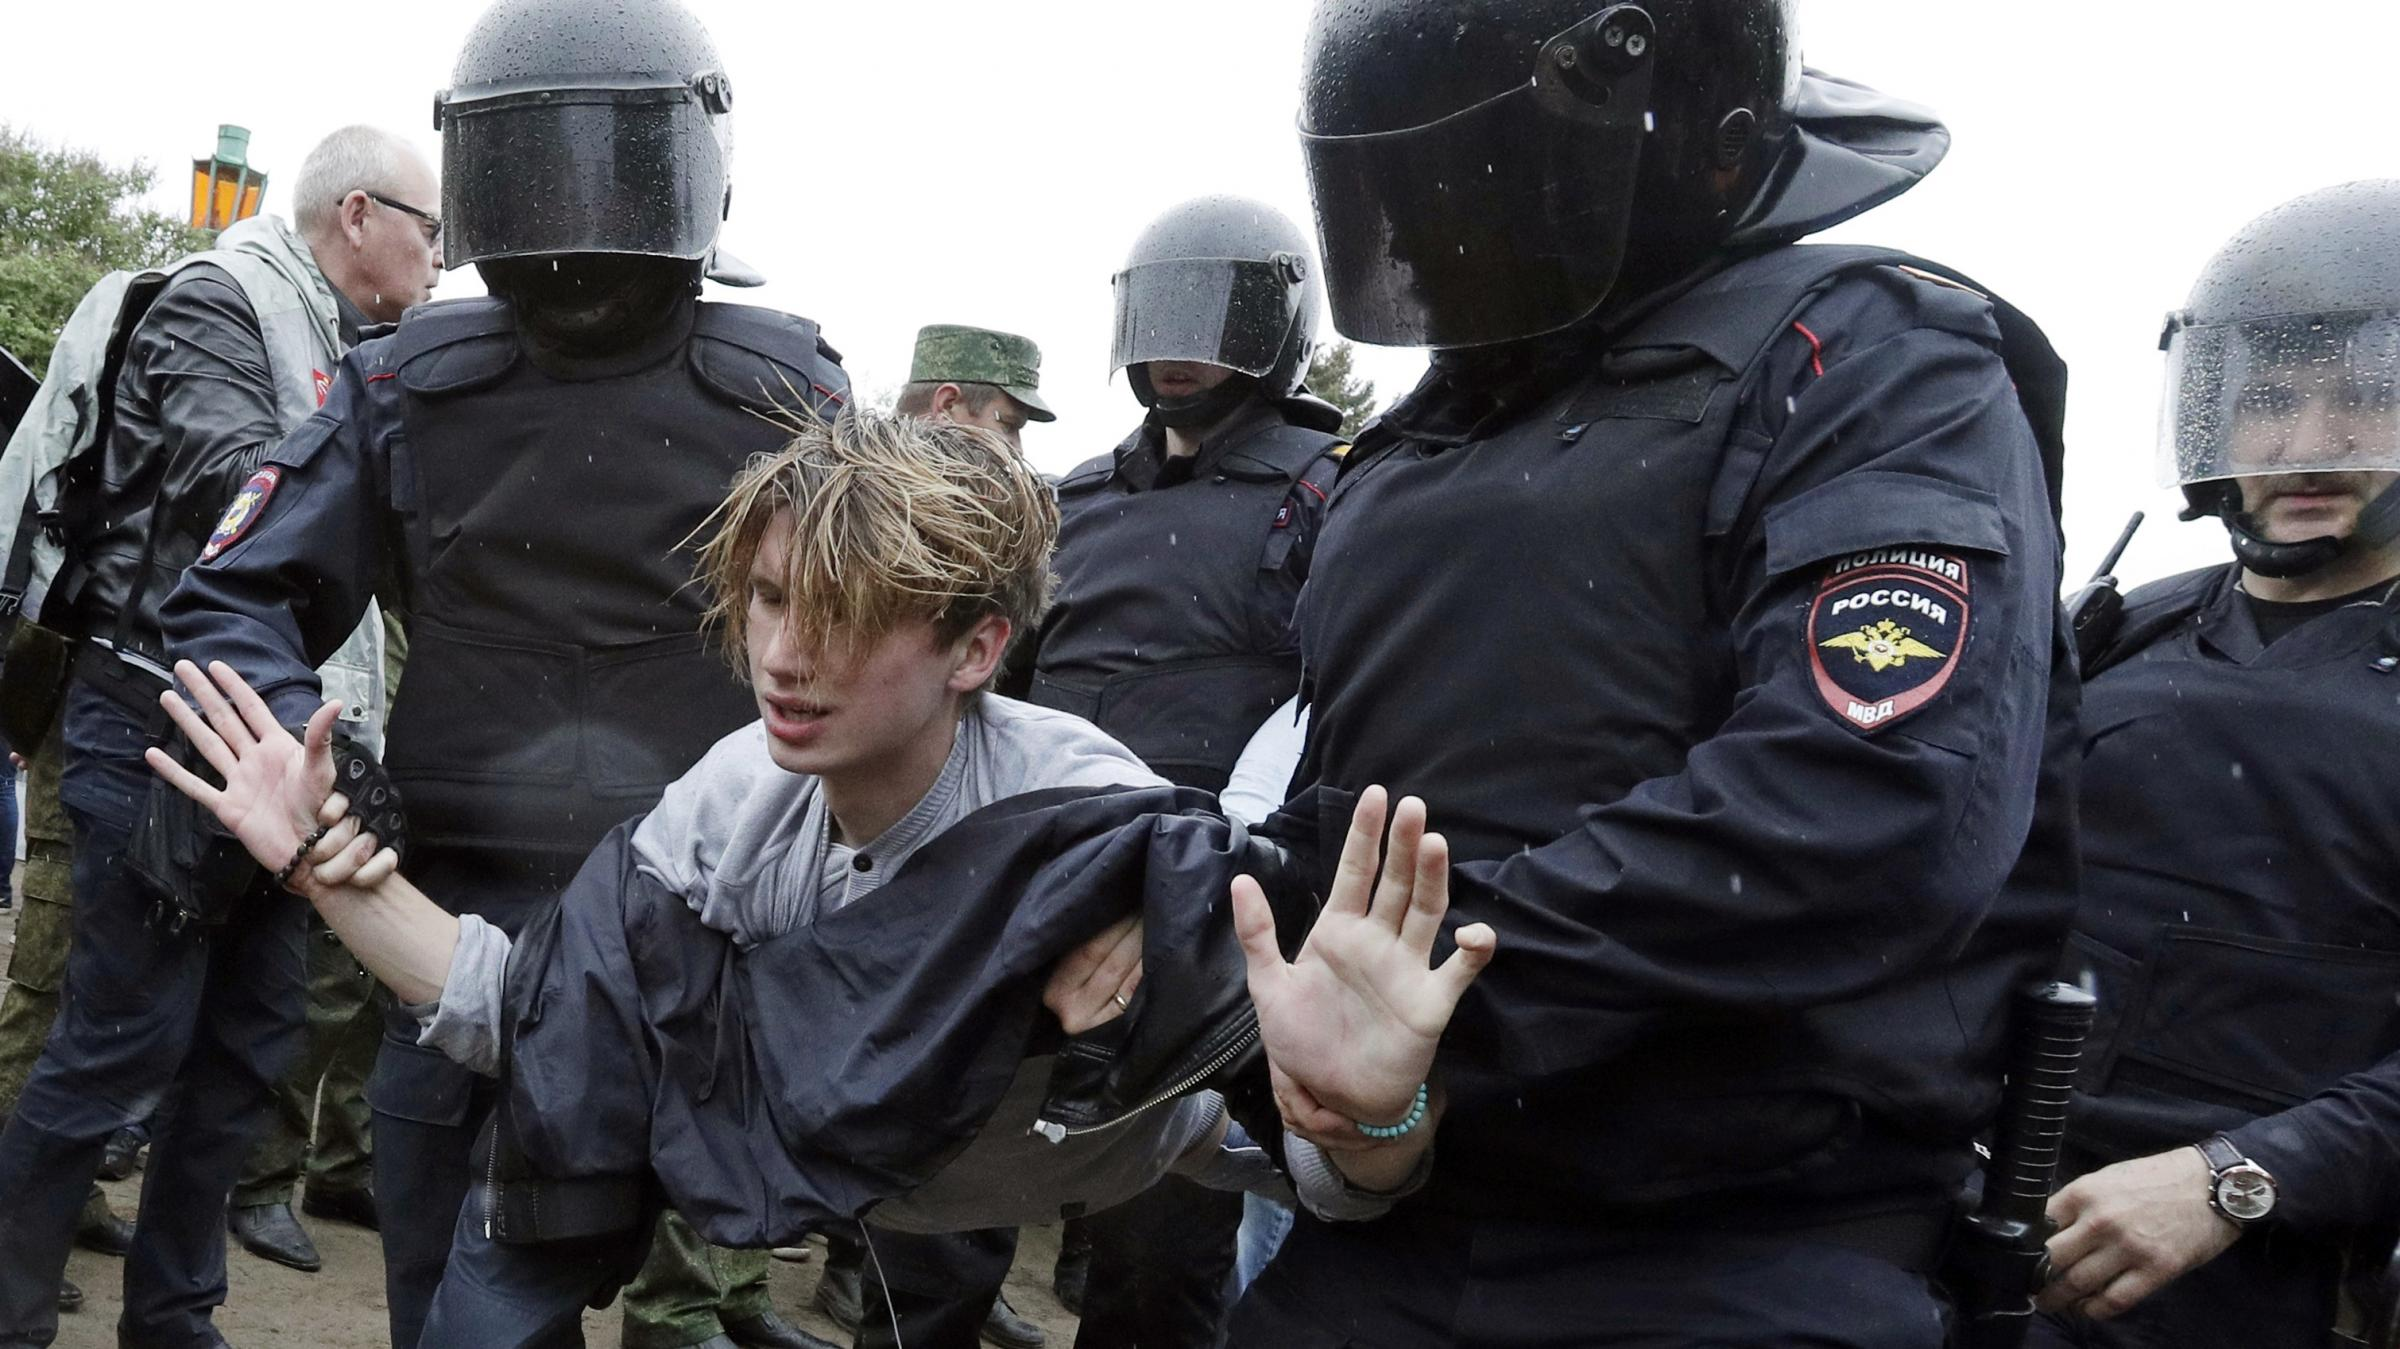 Russian Federation: mass protest arrests show authorities' 'stranglehold' on free expression